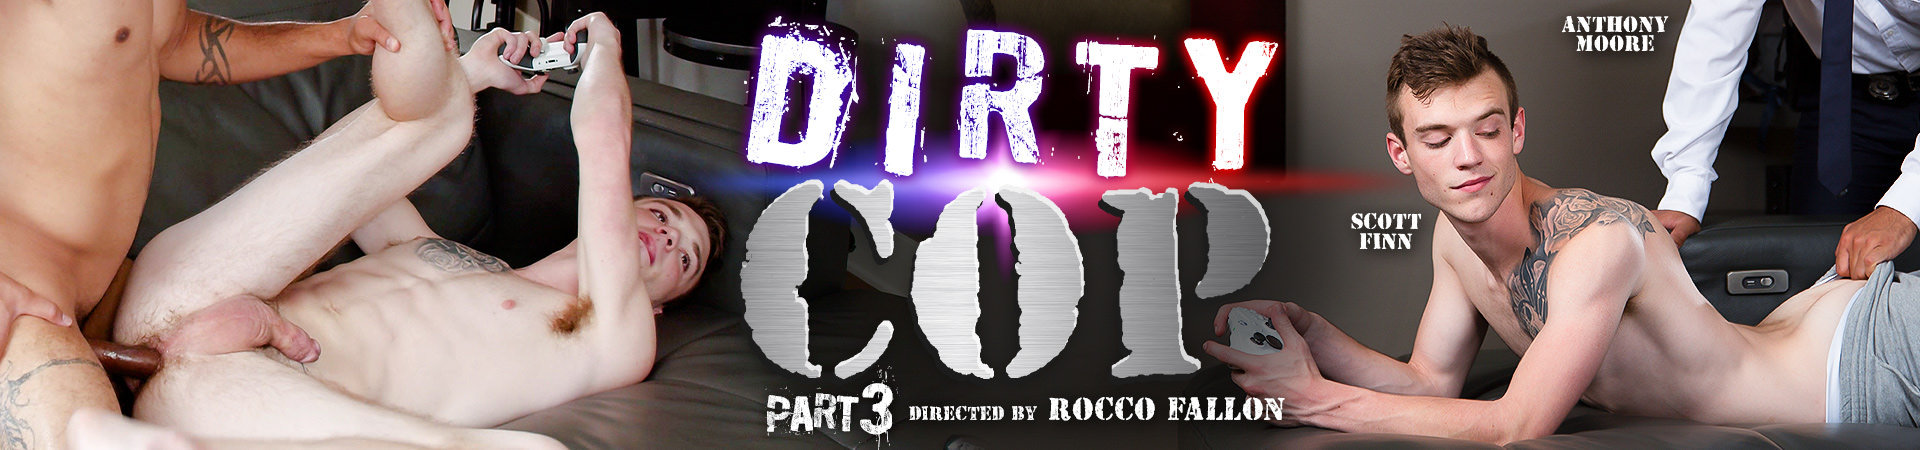 Dirty Cop 3 Featuring Anthony Moore and Scott Finn